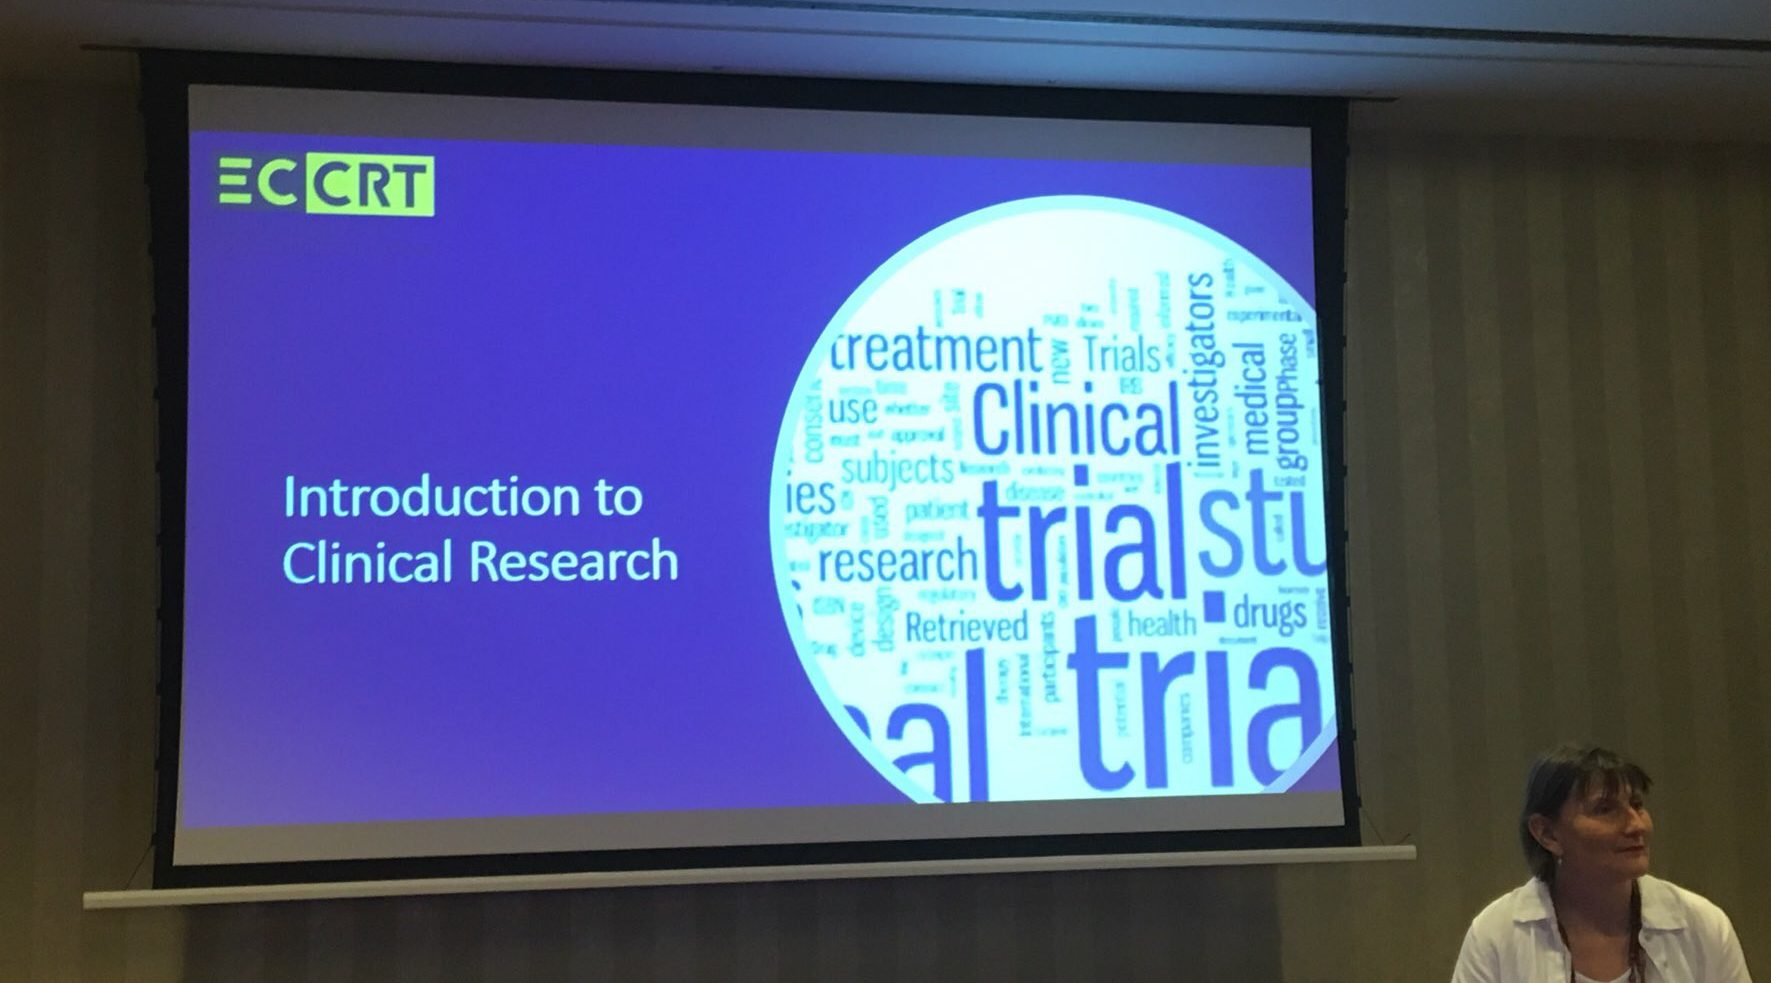 European Centre for Clinical Research Training (ECCRT)